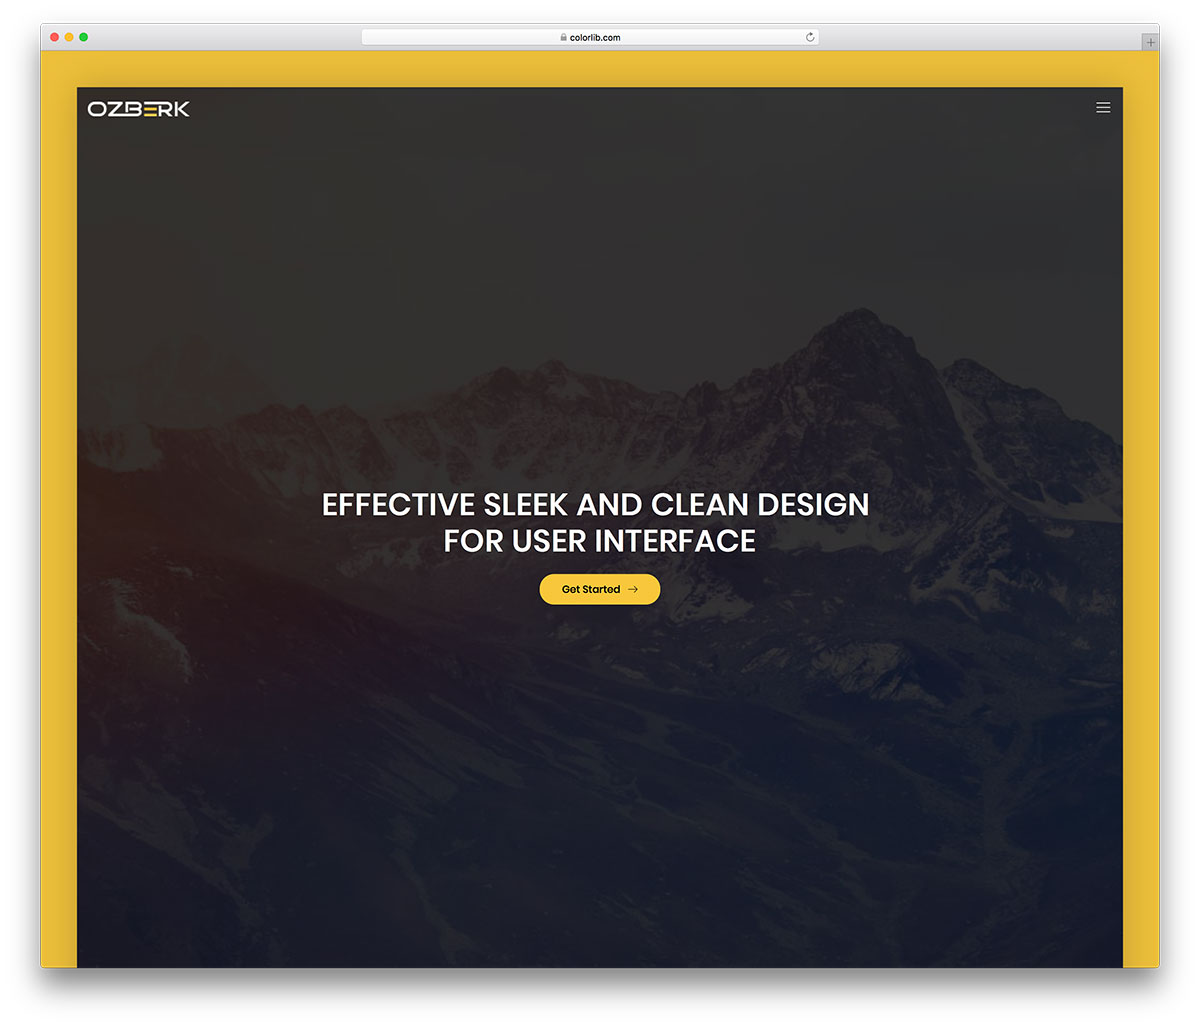 ozberk is a creative website template with fresh new look and design it is a multi page website template with all the basic pages pre designed for you so